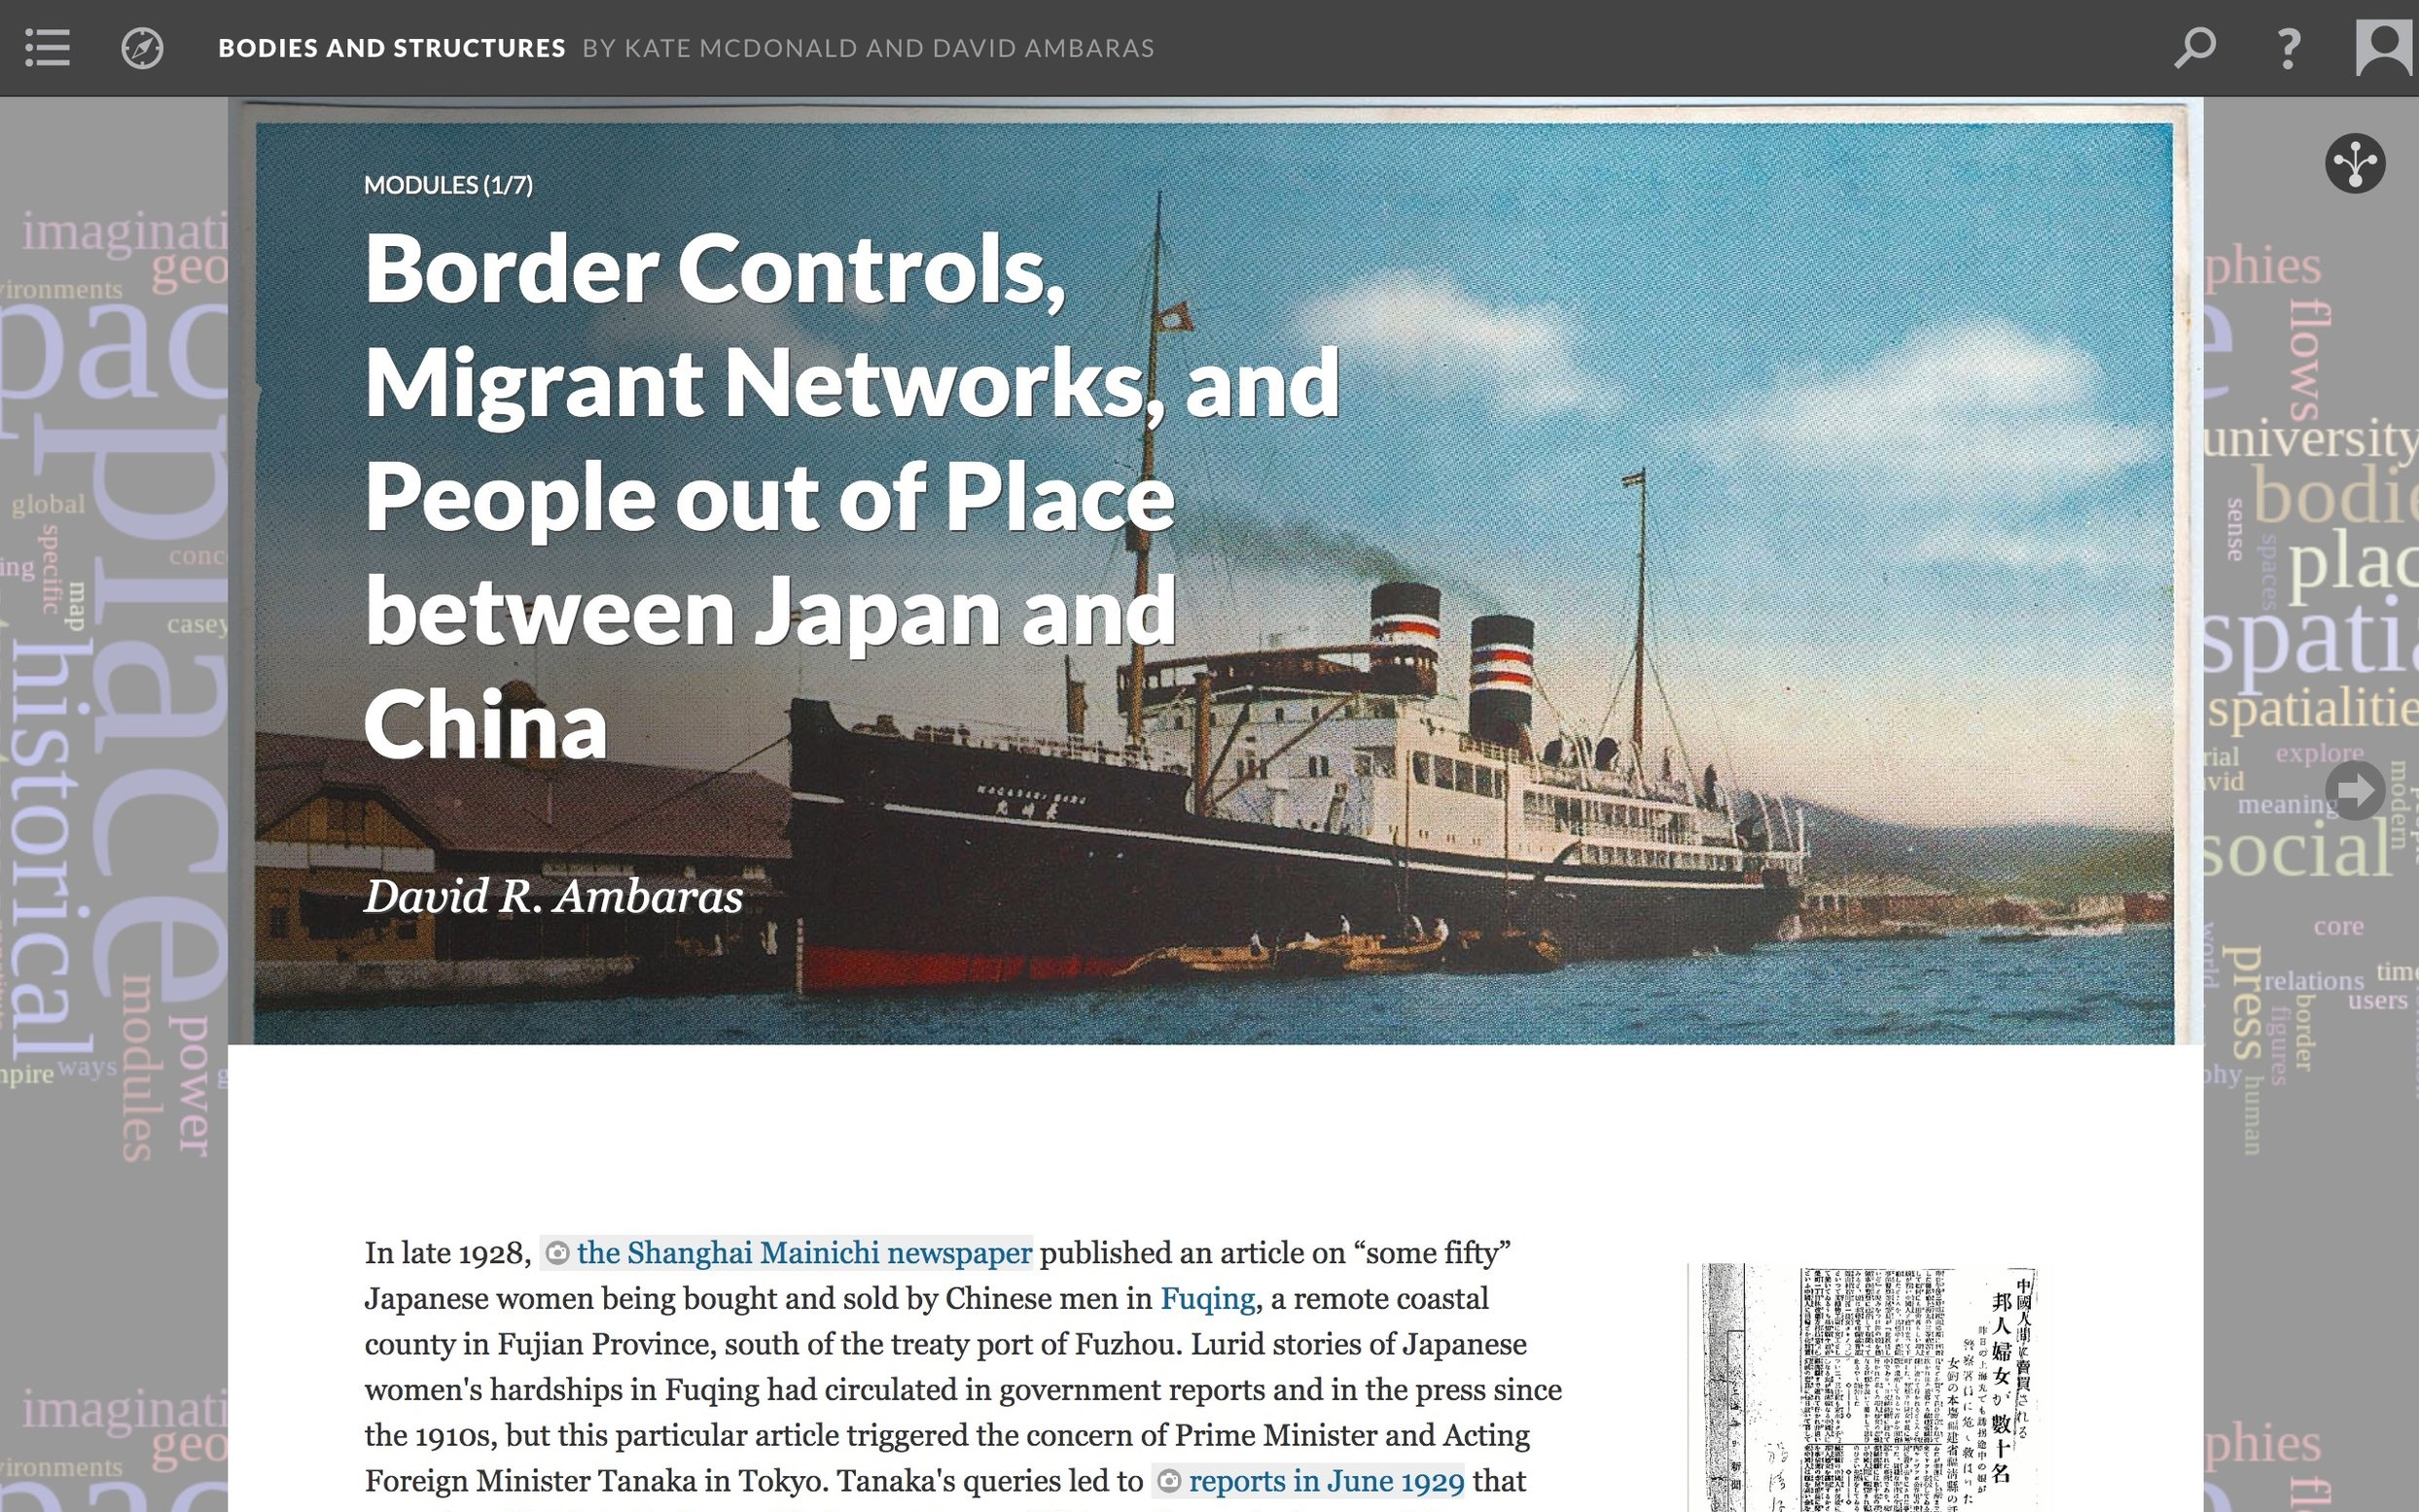 """Figure 4. The landing page of David Ambaras's module """"Border Controls, Migrant Networks, and People out of Place between Japan and China"""" (one of seven), May 1, 2019. Credit: David R. Ambaras and Kate McDonald."""